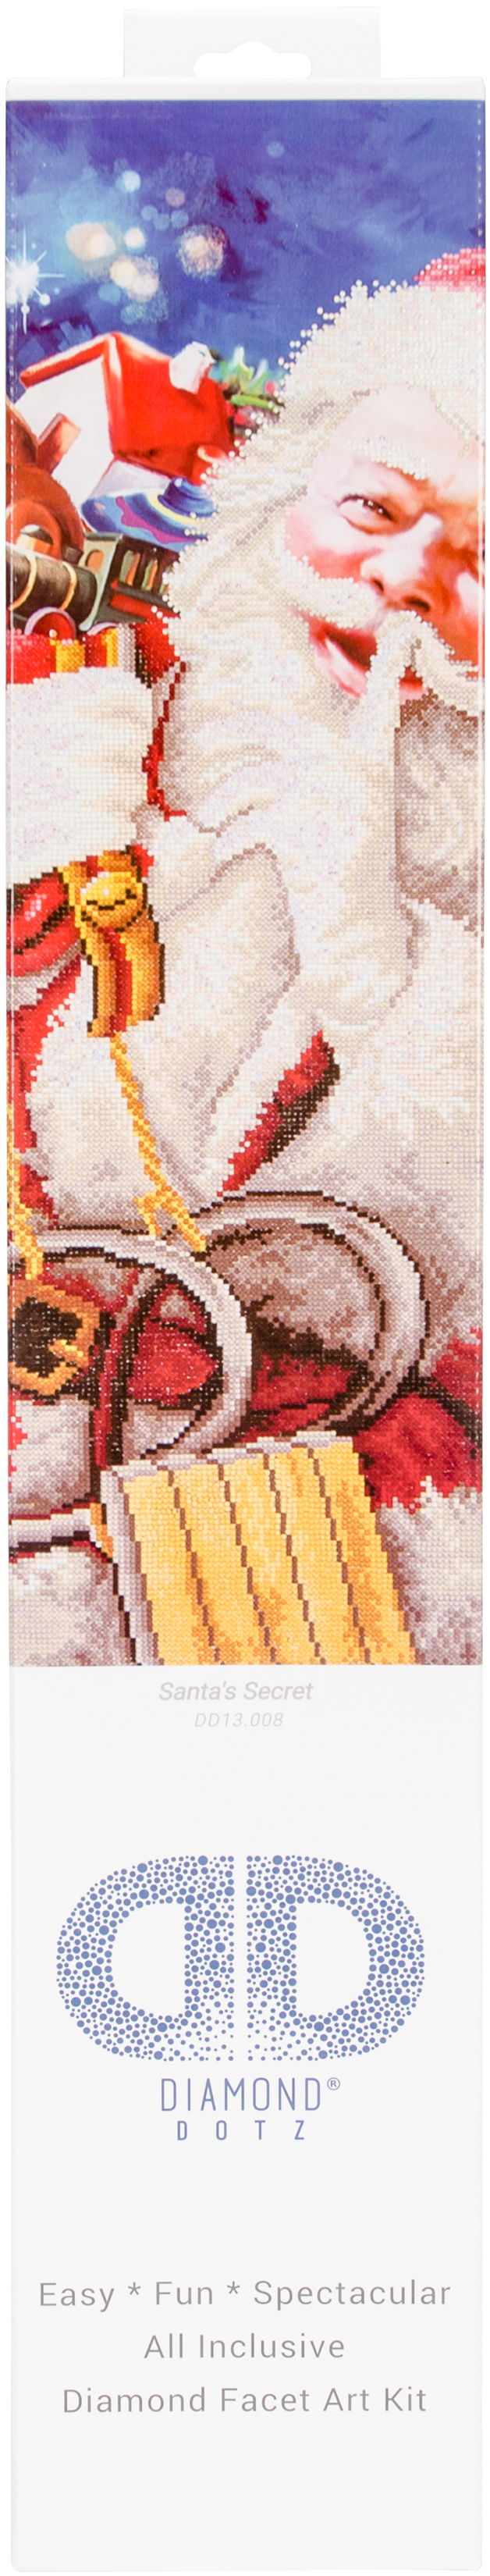 Diamond Dotz Diamond Embroidery Facet Art Kit 37.25X43.5-Santa's Secret